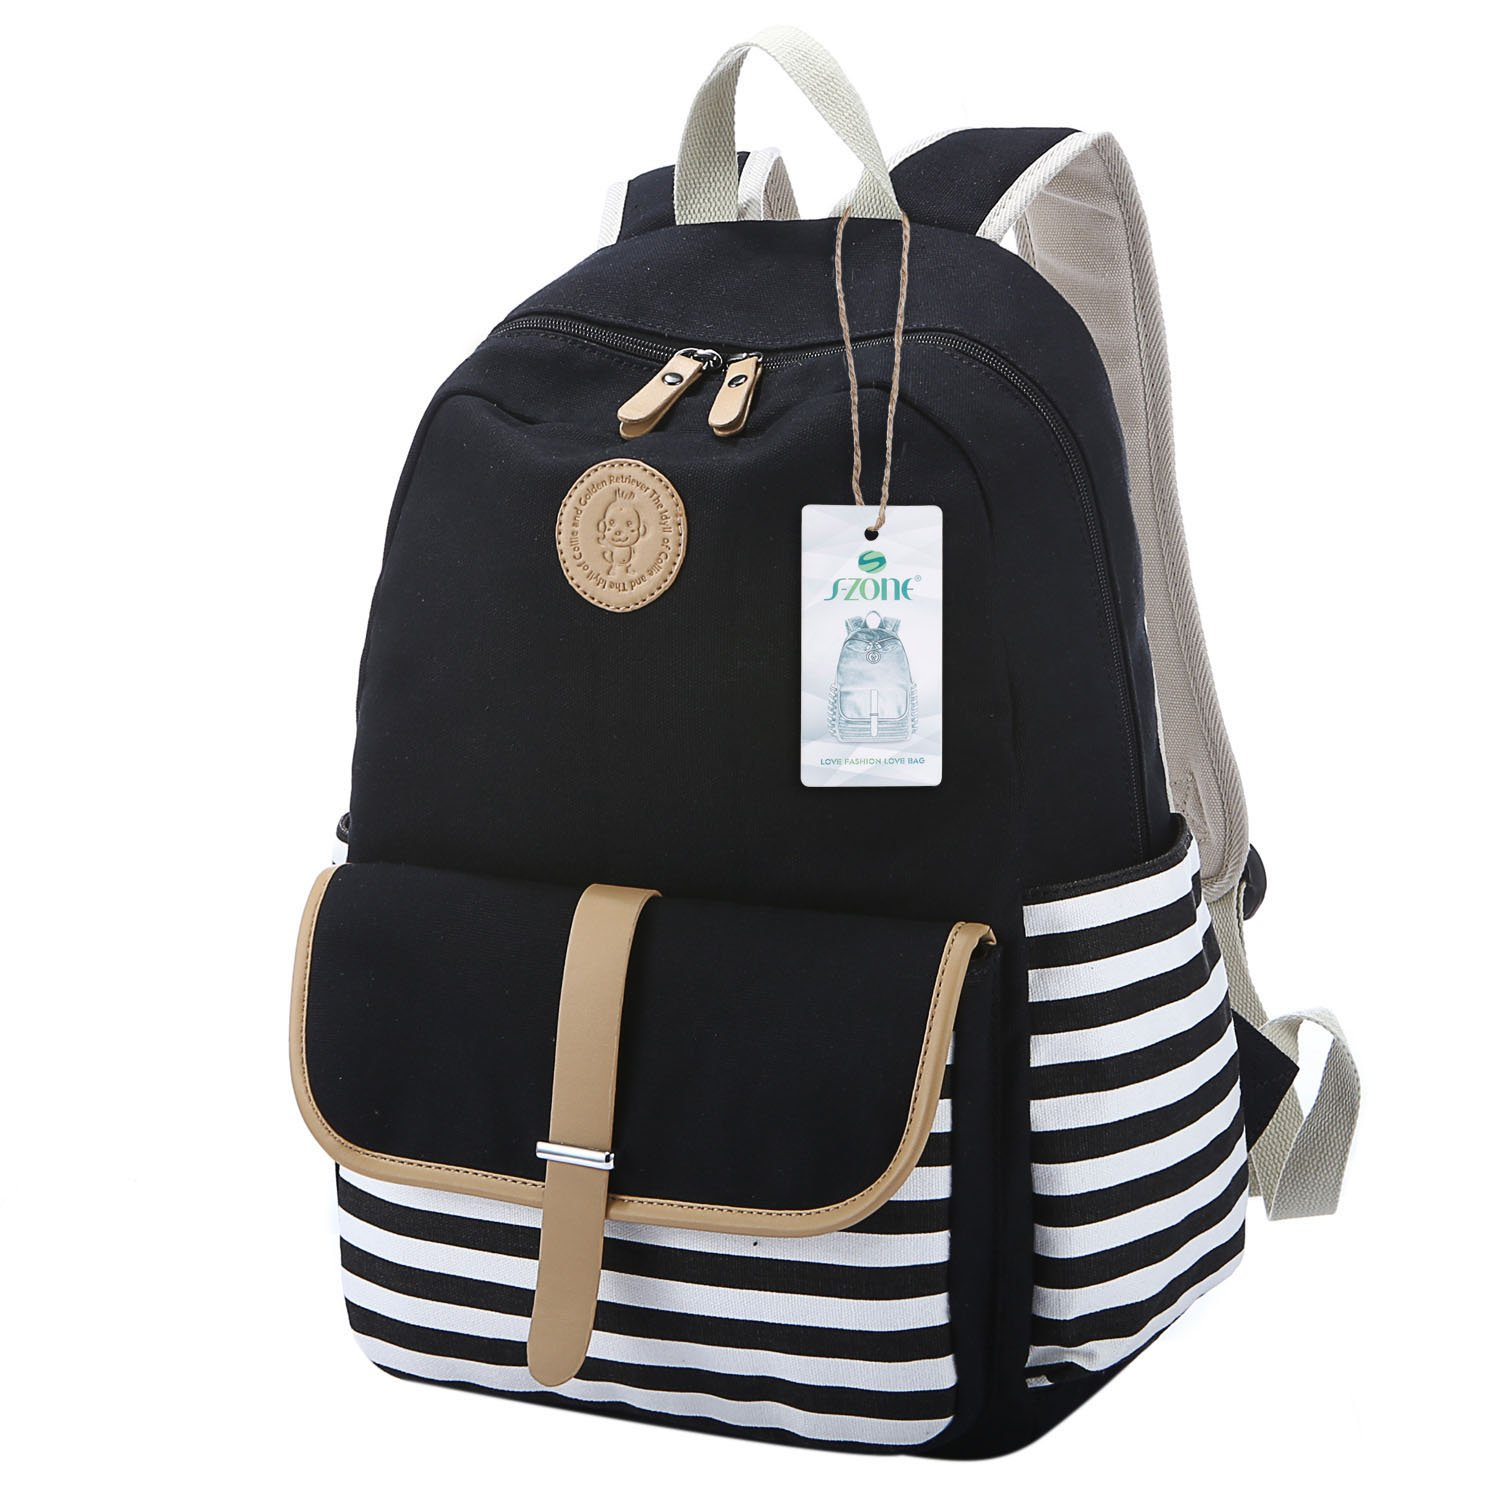 a7eea31ca S-ZONE French Breton Nautical Striped Backpack Rucksack Marine Sailor Navy  Stripy School Bags for Teenager Girls (A-Black): Amazon.co.uk: Luggage